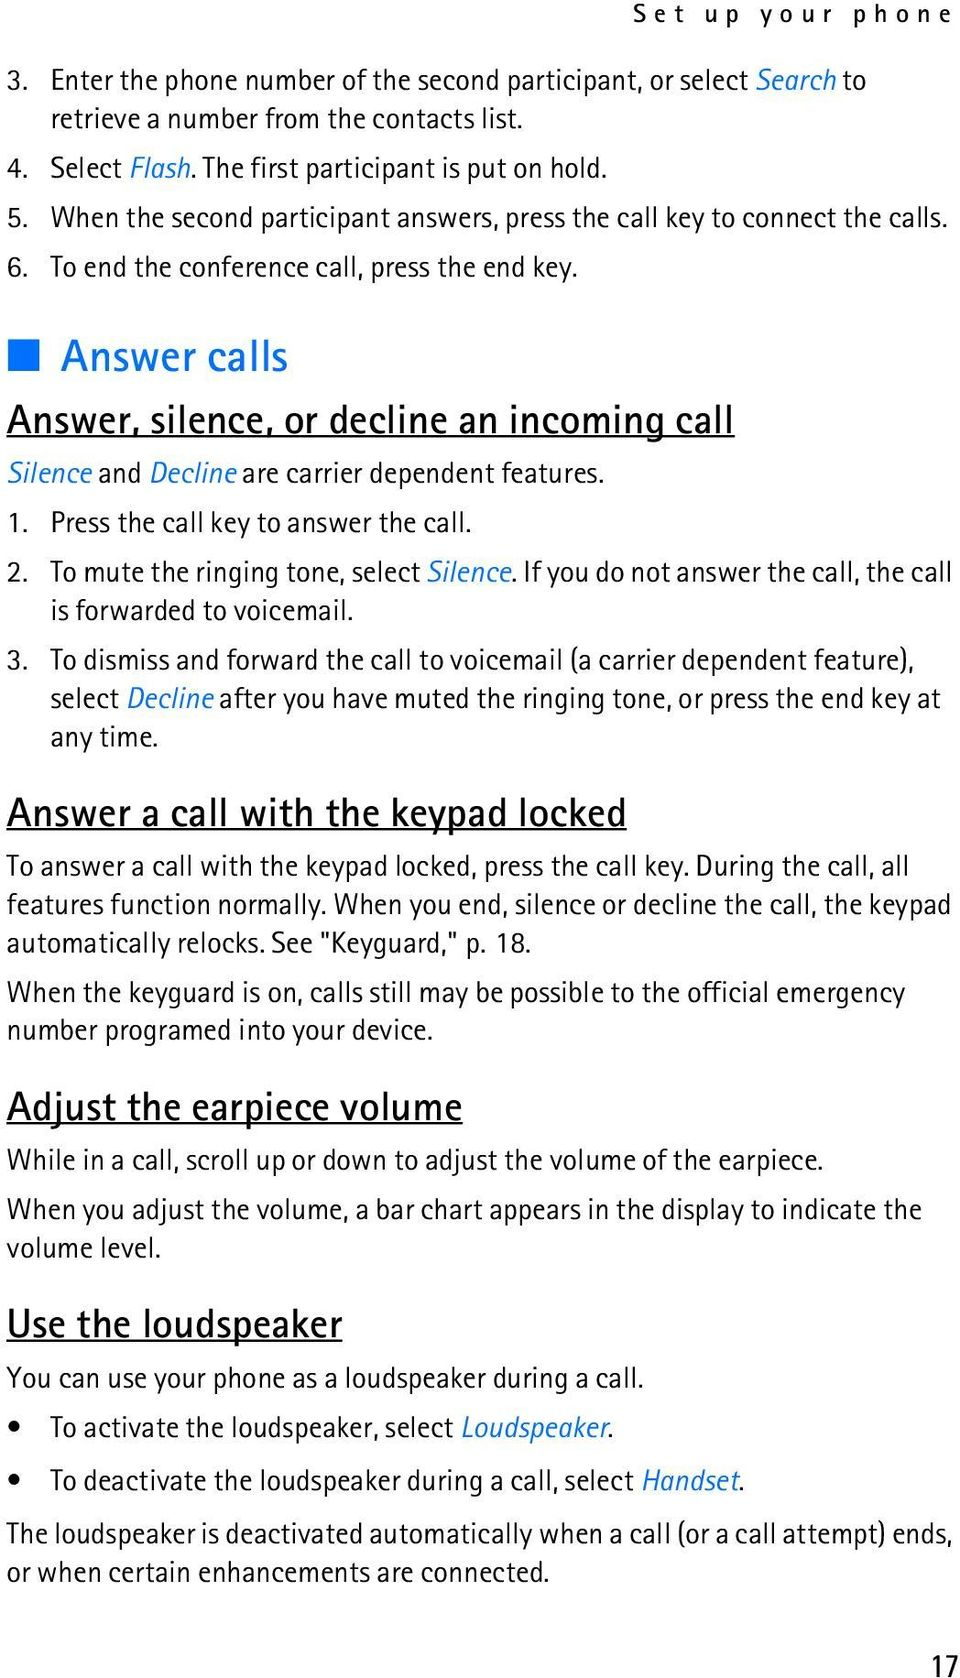 Answer calls Answer, silence, or decline an incoming call Silence and Decline are carrier dependent features. 1. Press the call key to answer the call. 2. To mute the ringing tone, select Silence.